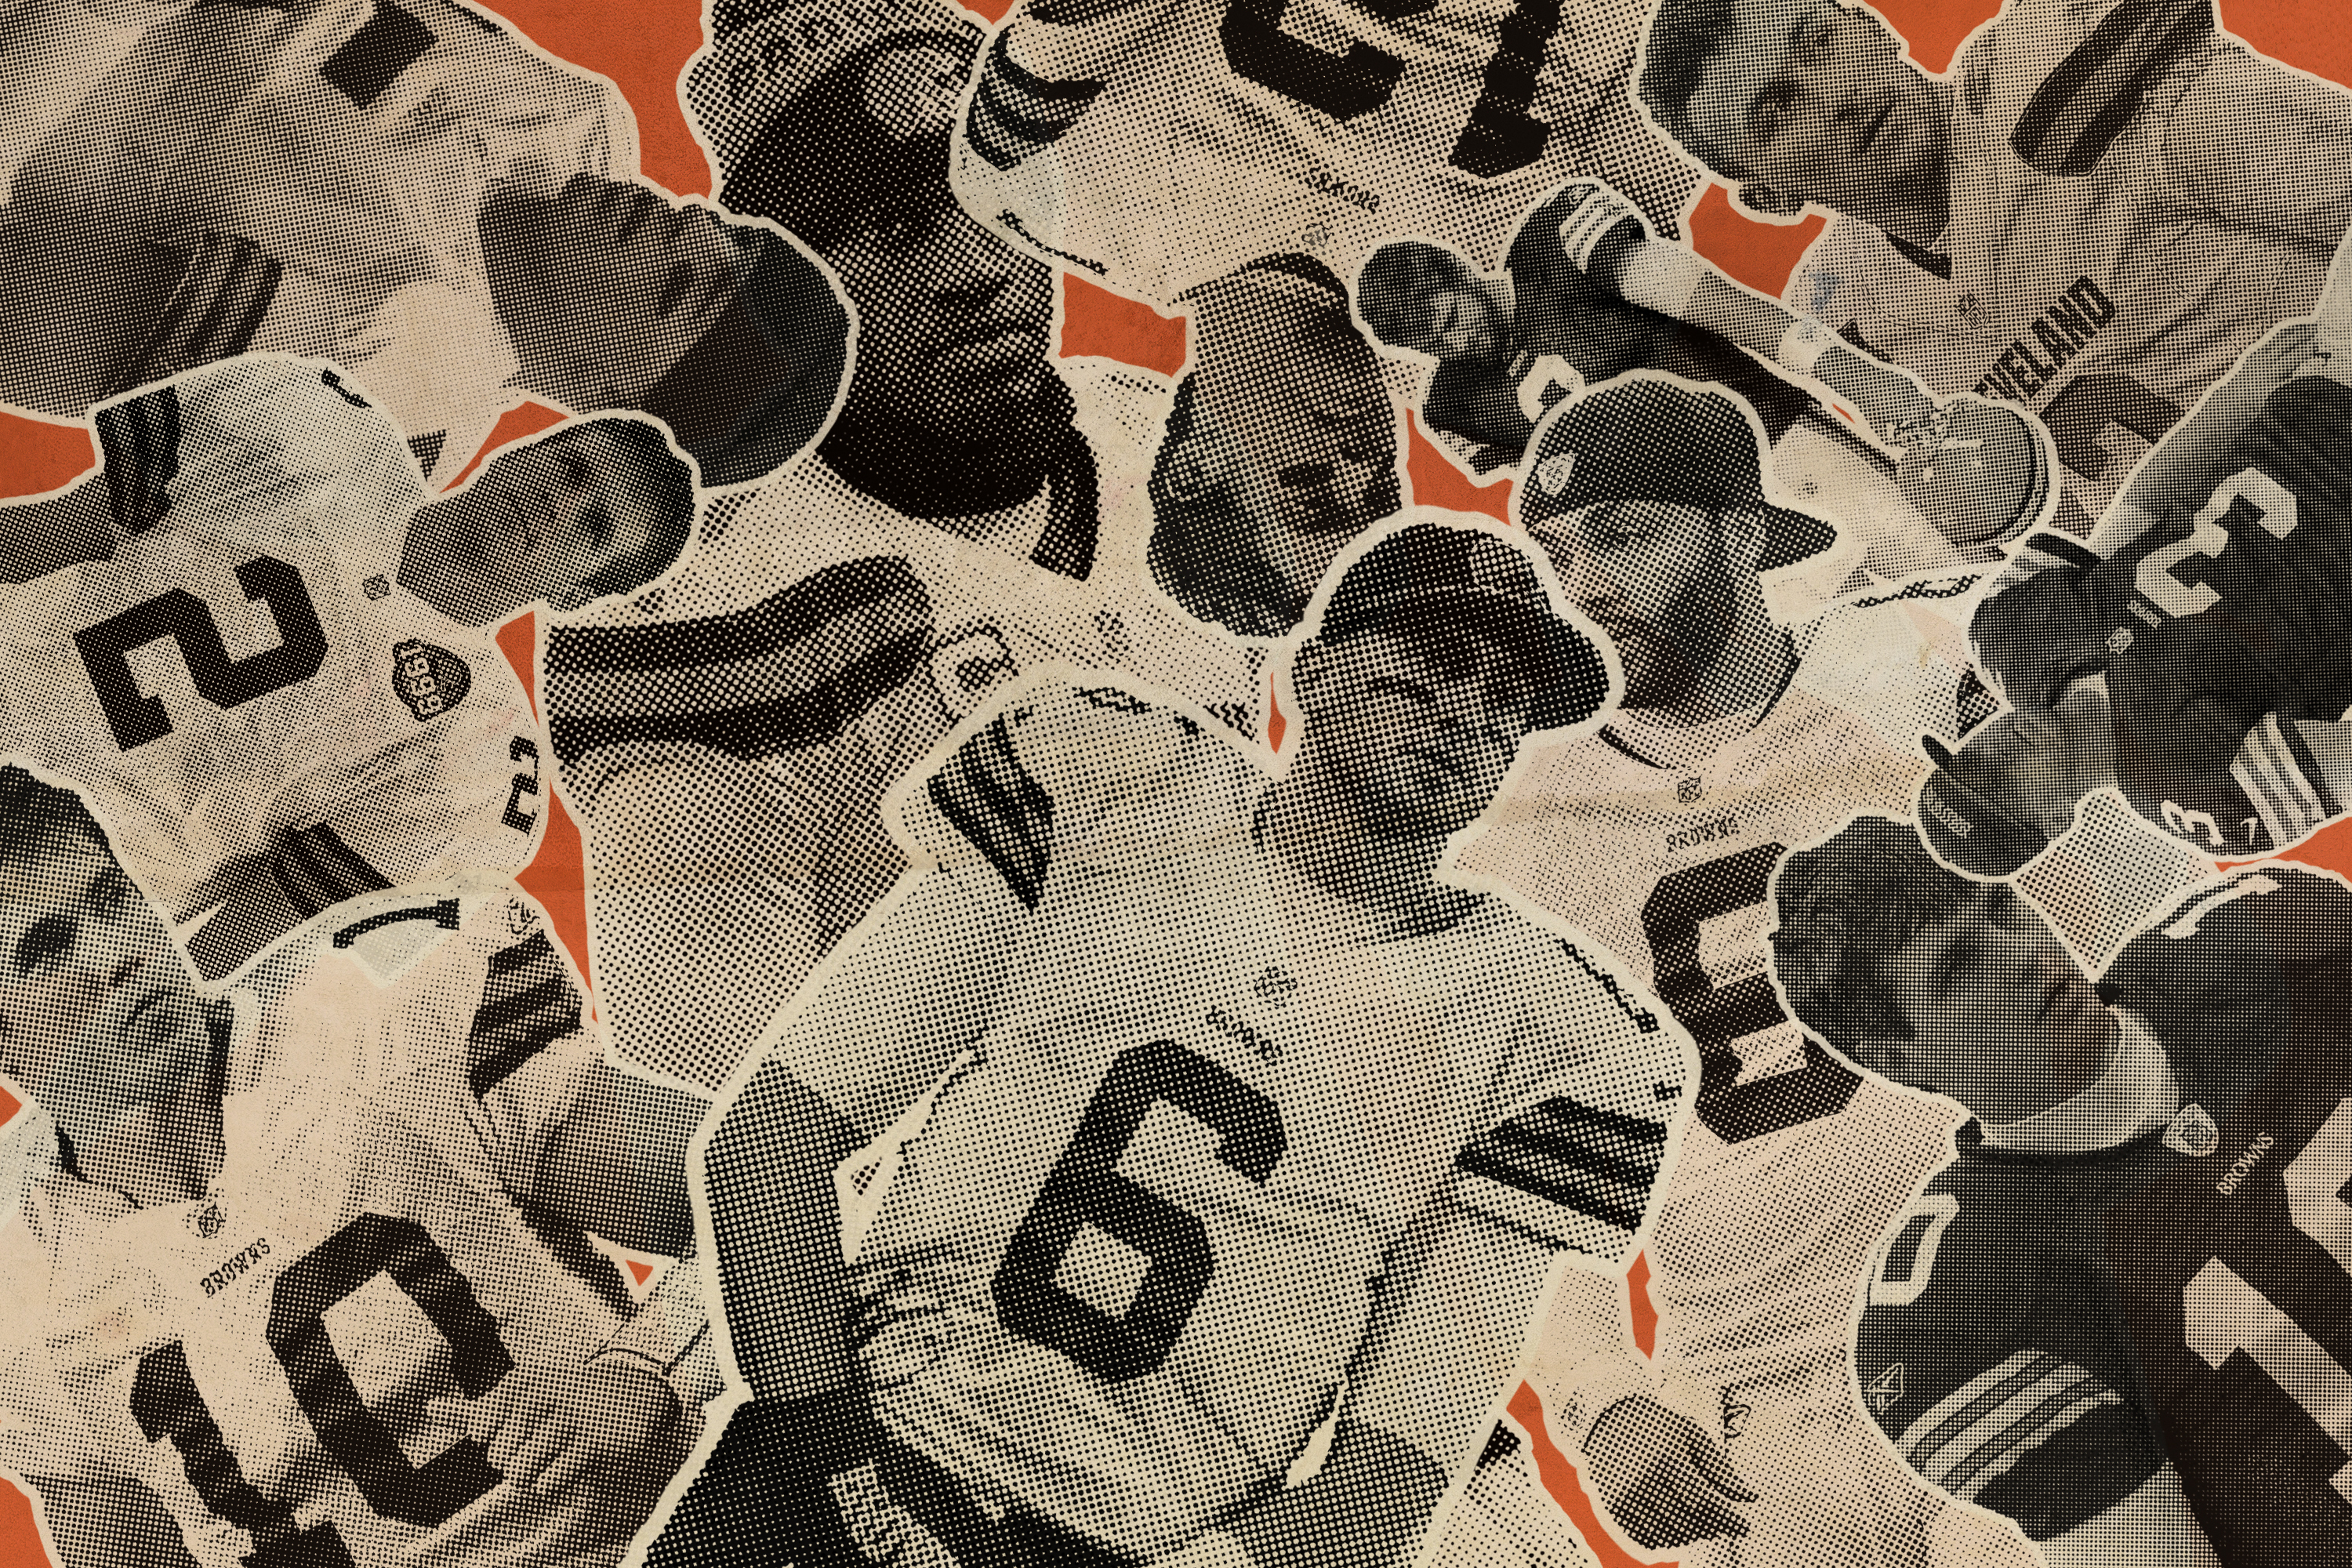 new arrival cd5c1 50aeb Last Stop to Nowhere': The Browns' Infamous QB Jersey Has a ...